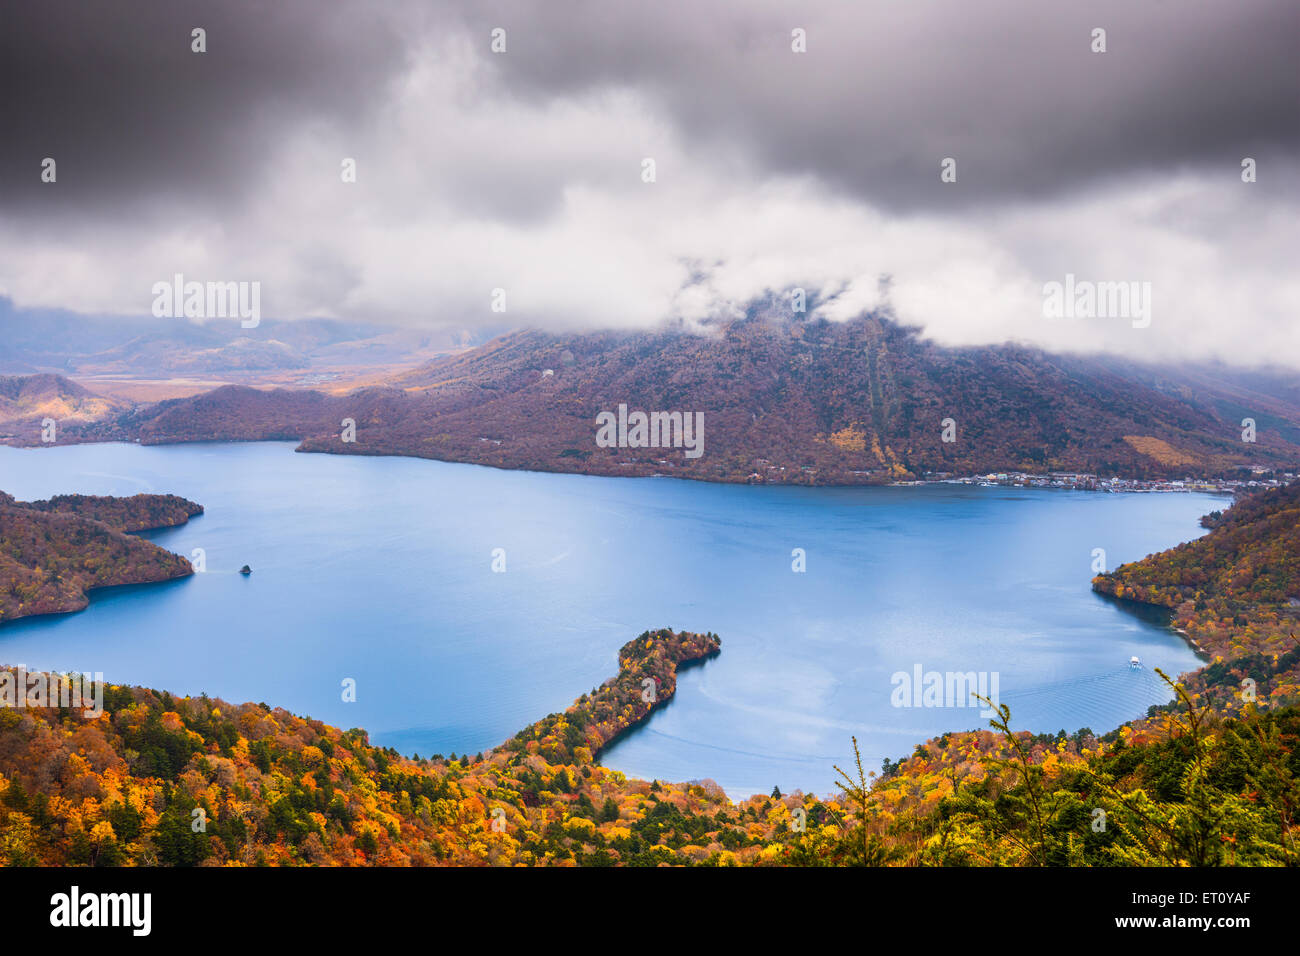 Nikko, Japan at Lake Chuzenji and Mt. Nantai in the autumn. - Stock Image